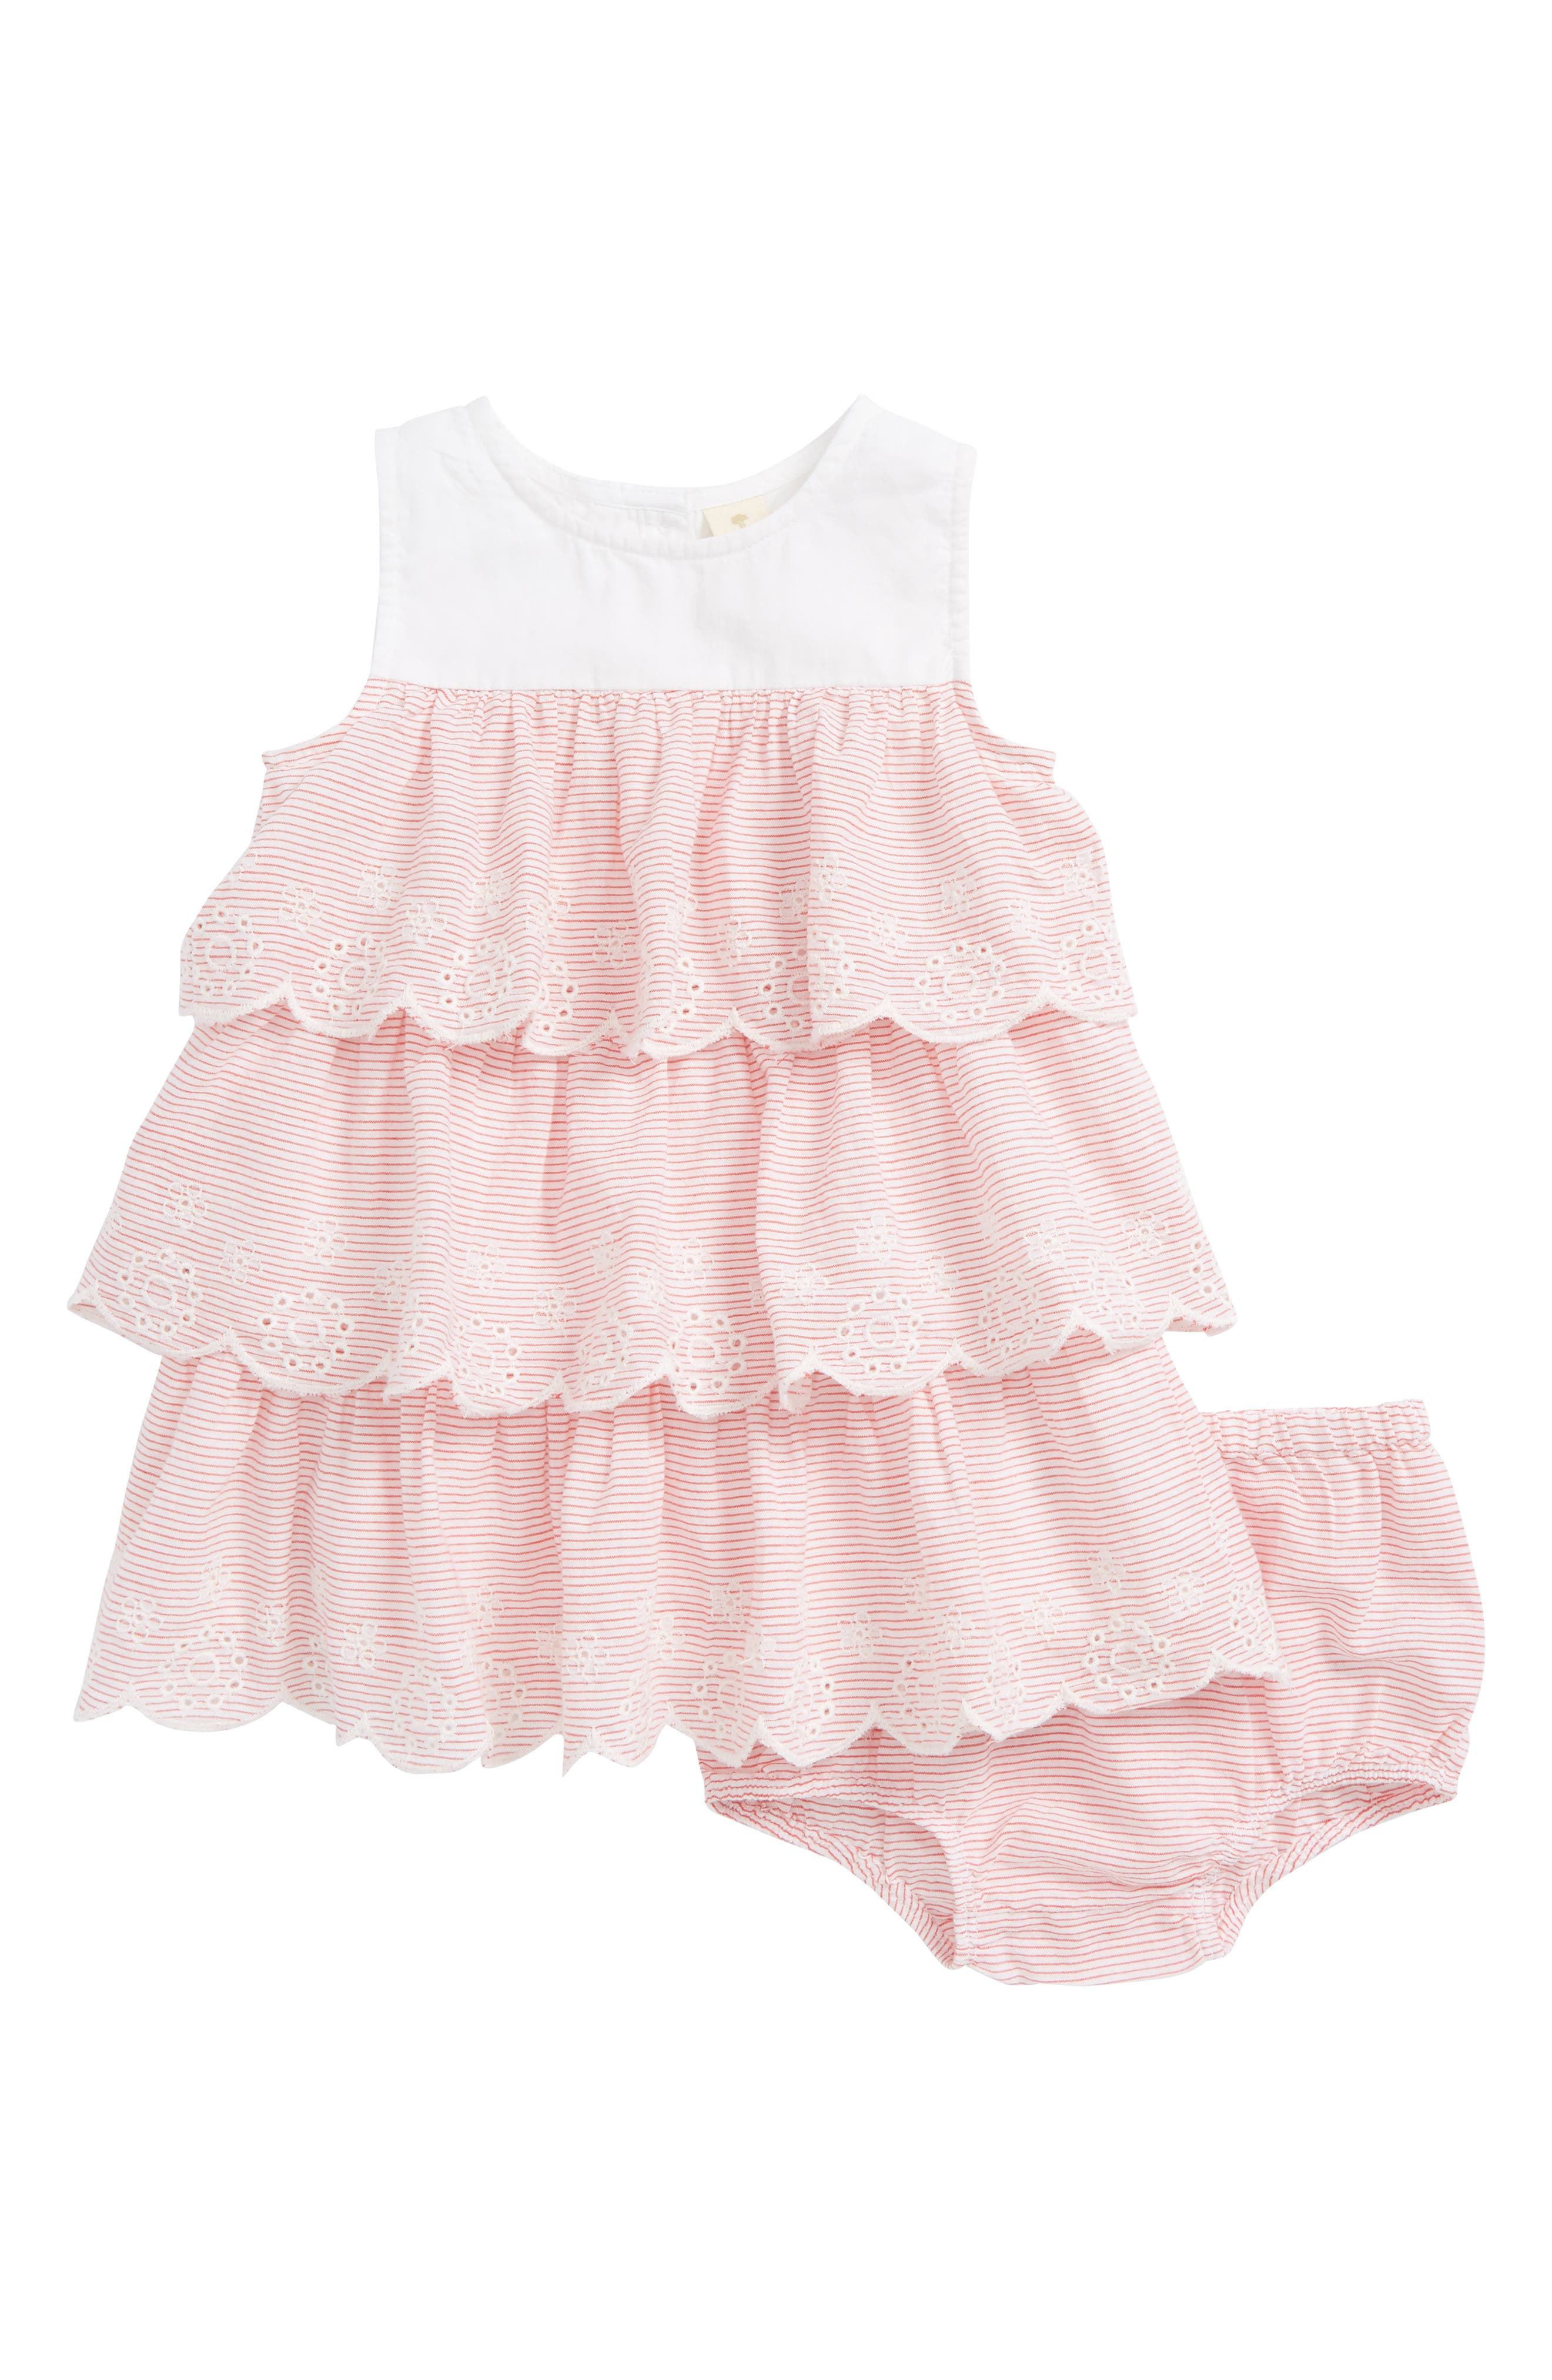 Tiered Woven Dress,                             Main thumbnail 1, color,                             White- Red Stripe